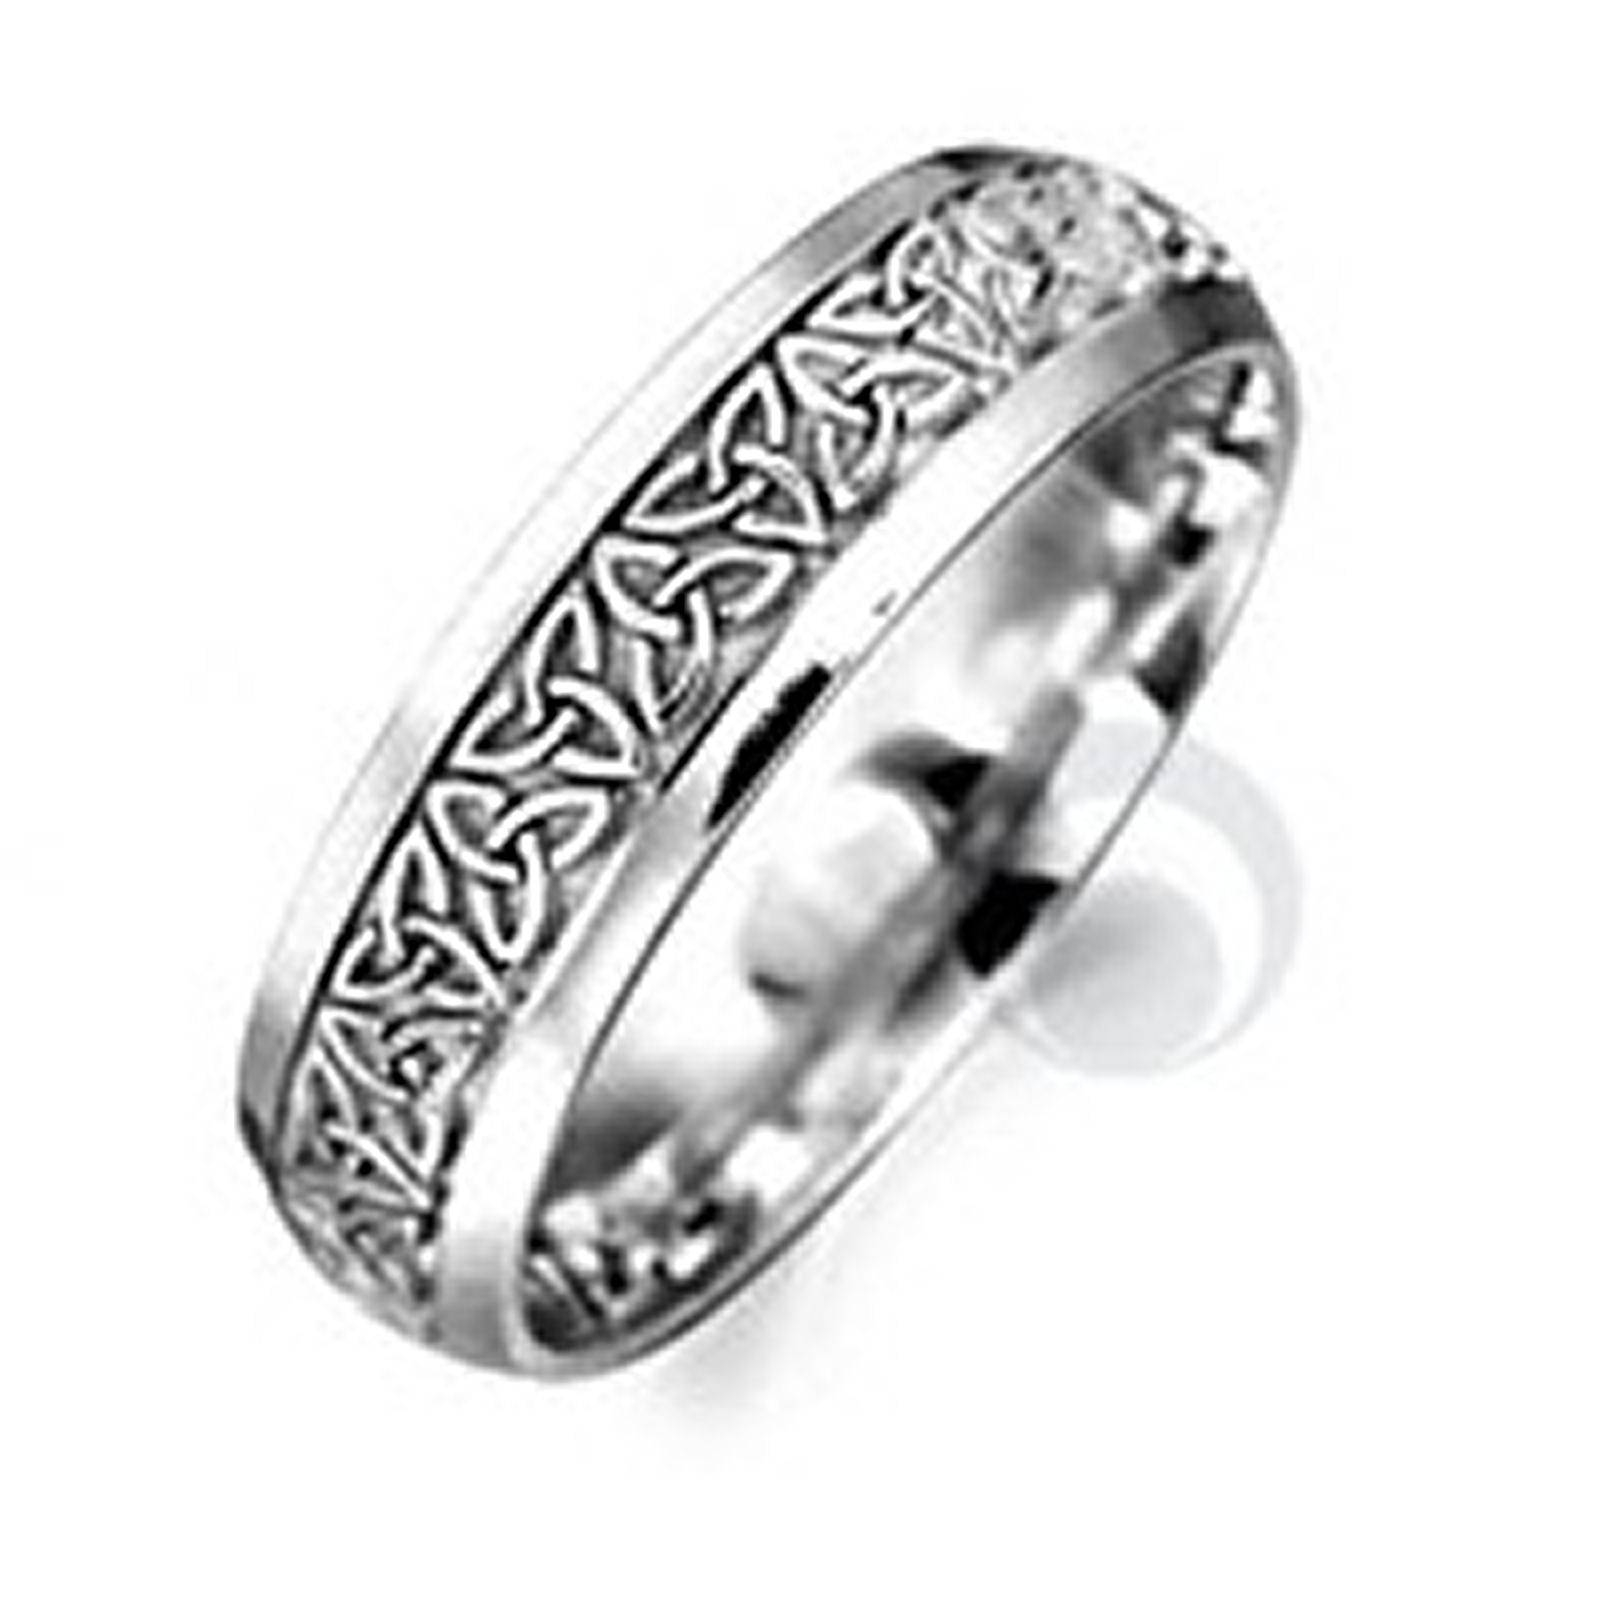 gaelic best band cross gold multi s engagement wedding white rings of beautiful men lubri stone carved ring